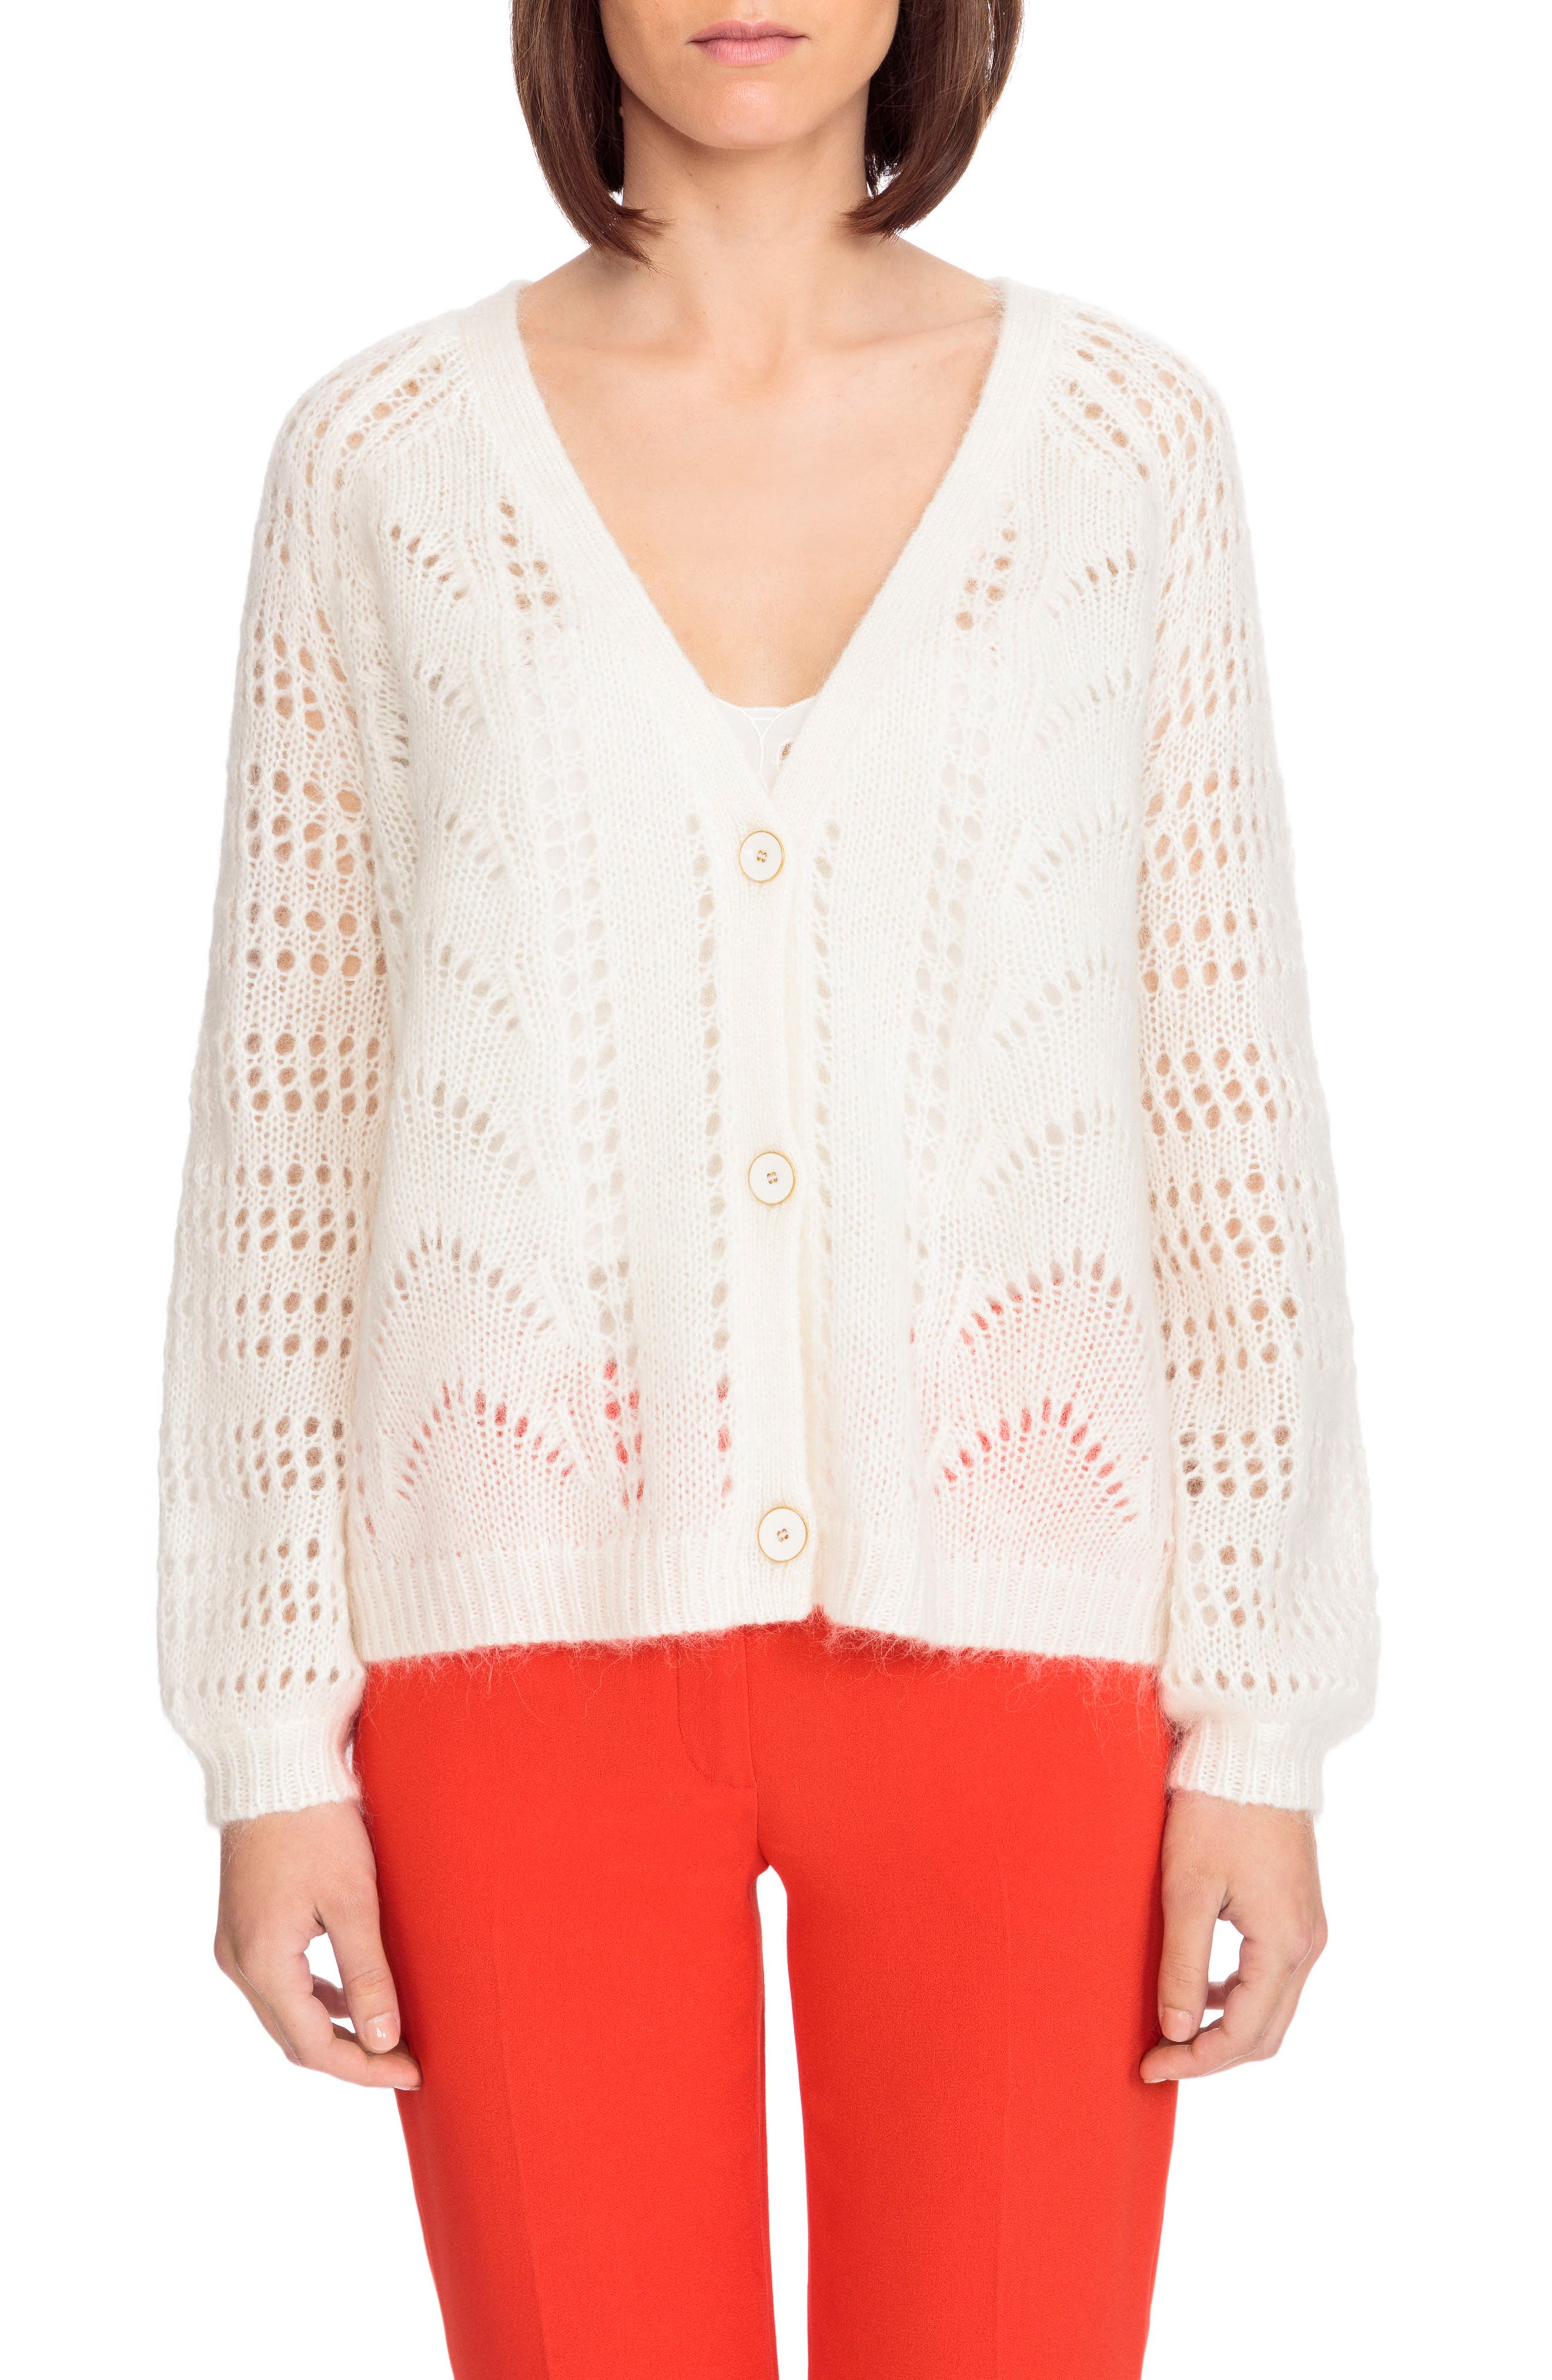 Dereck Cardigan,                             Main thumbnail 1, color,                             Off White